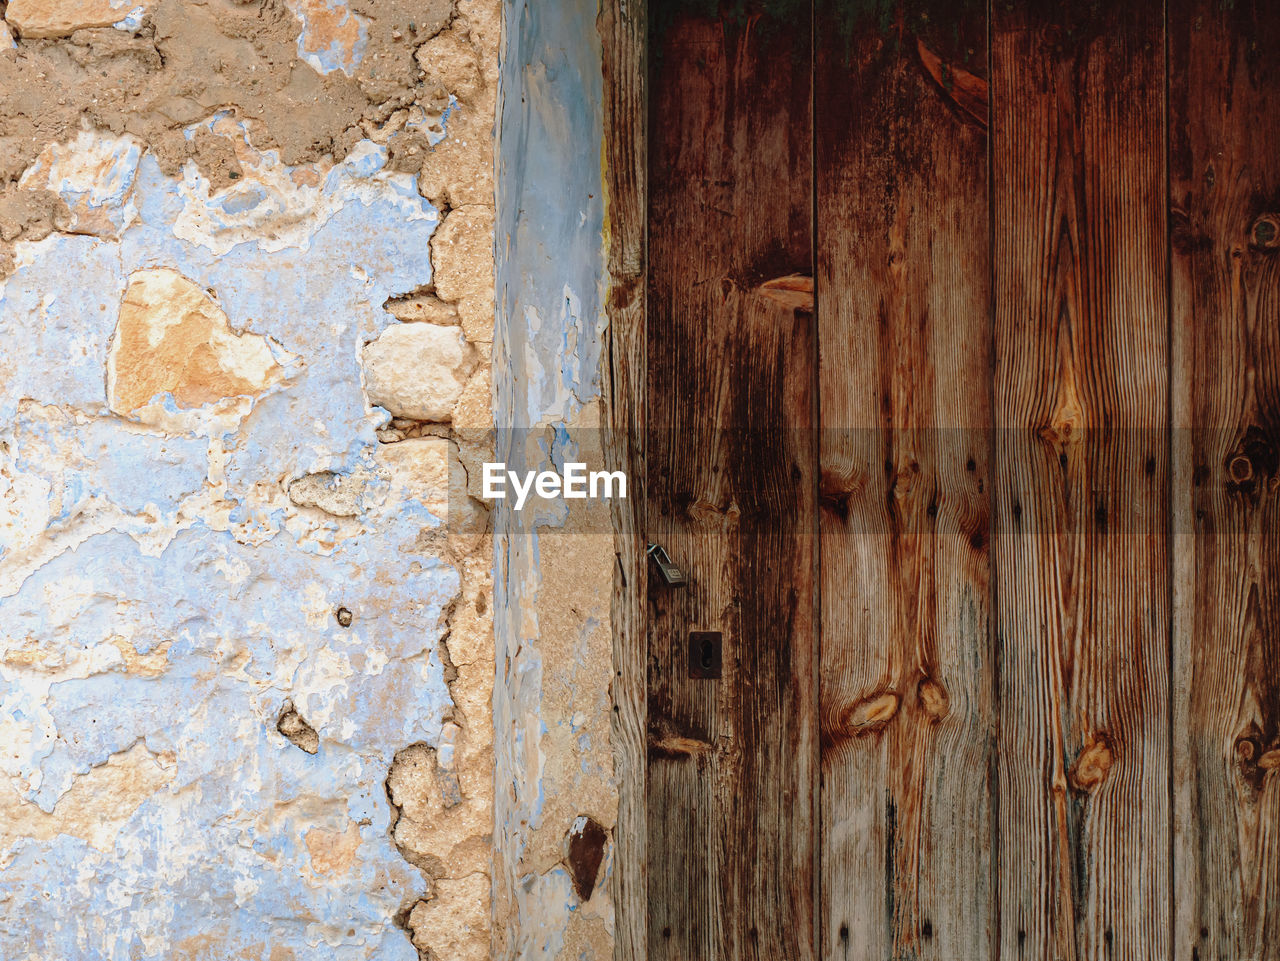 CLOSE-UP OF WEATHERED DOOR